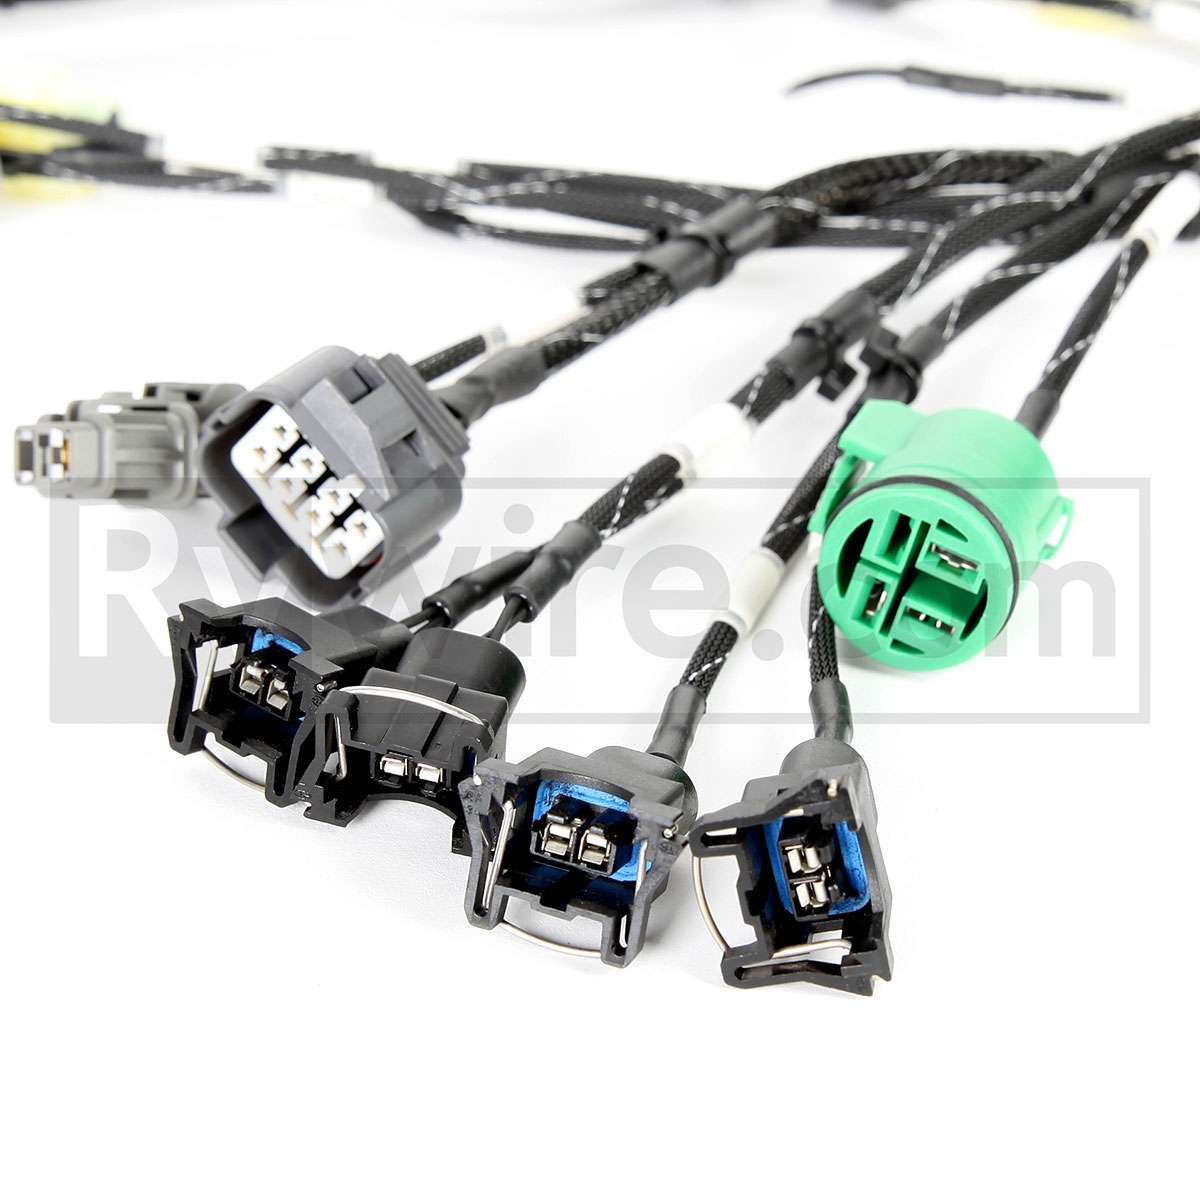 B1 Base 4?1403534211 rywire com budget d & b series tucked engine harness 99-00 civic si wiring harness at webbmarketing.co